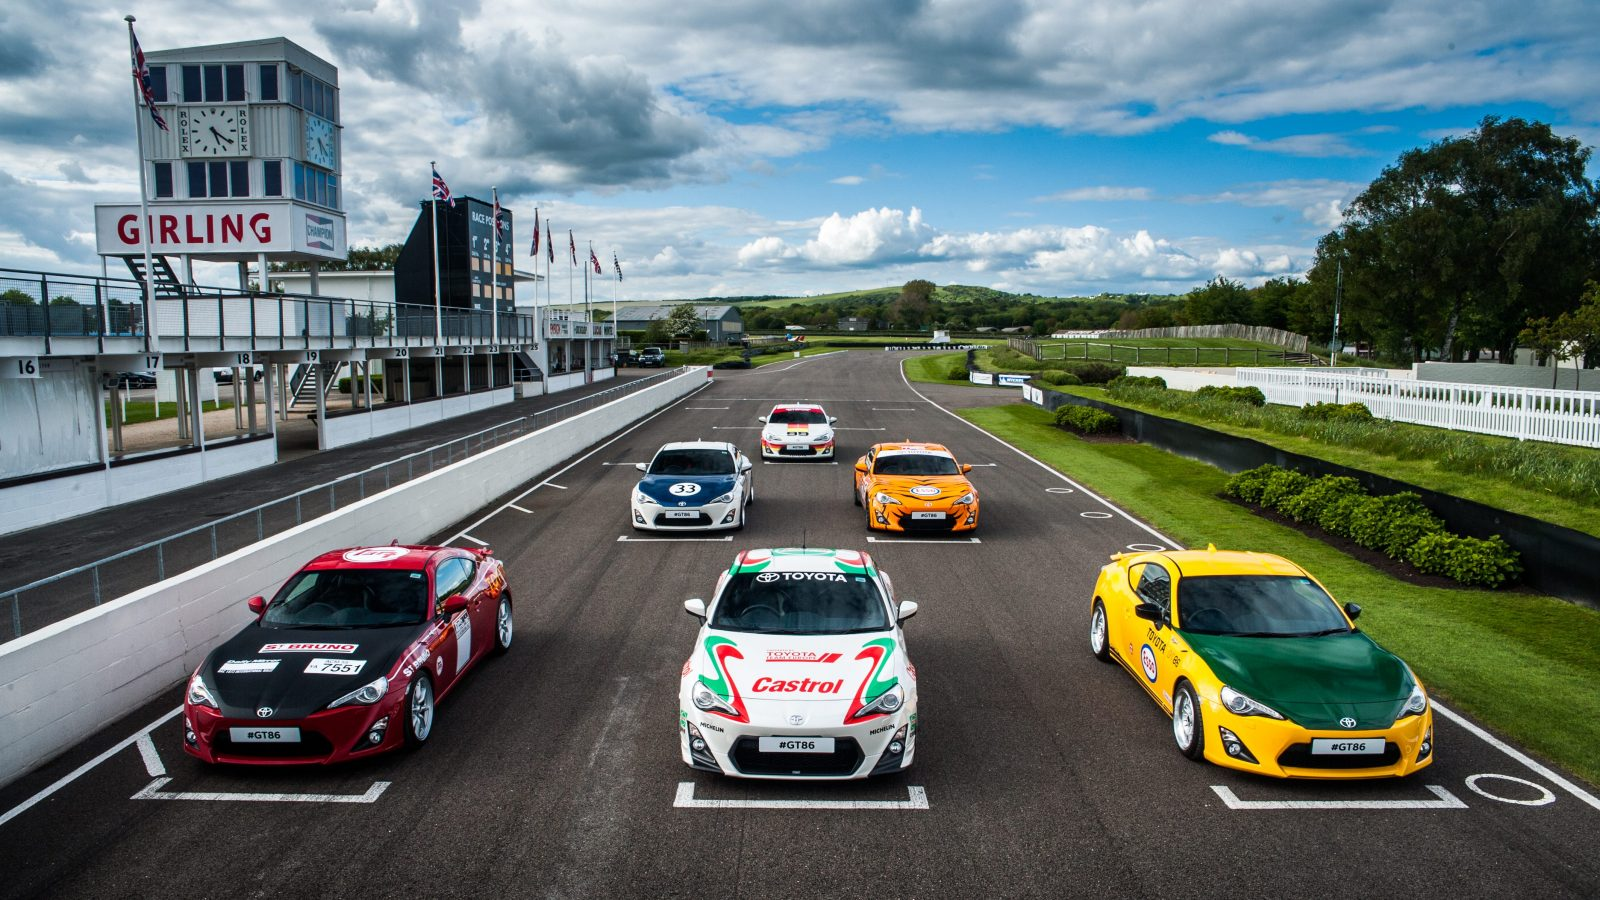 Six Toyota GT86s with retro liveries line up on the grid at Goodwood